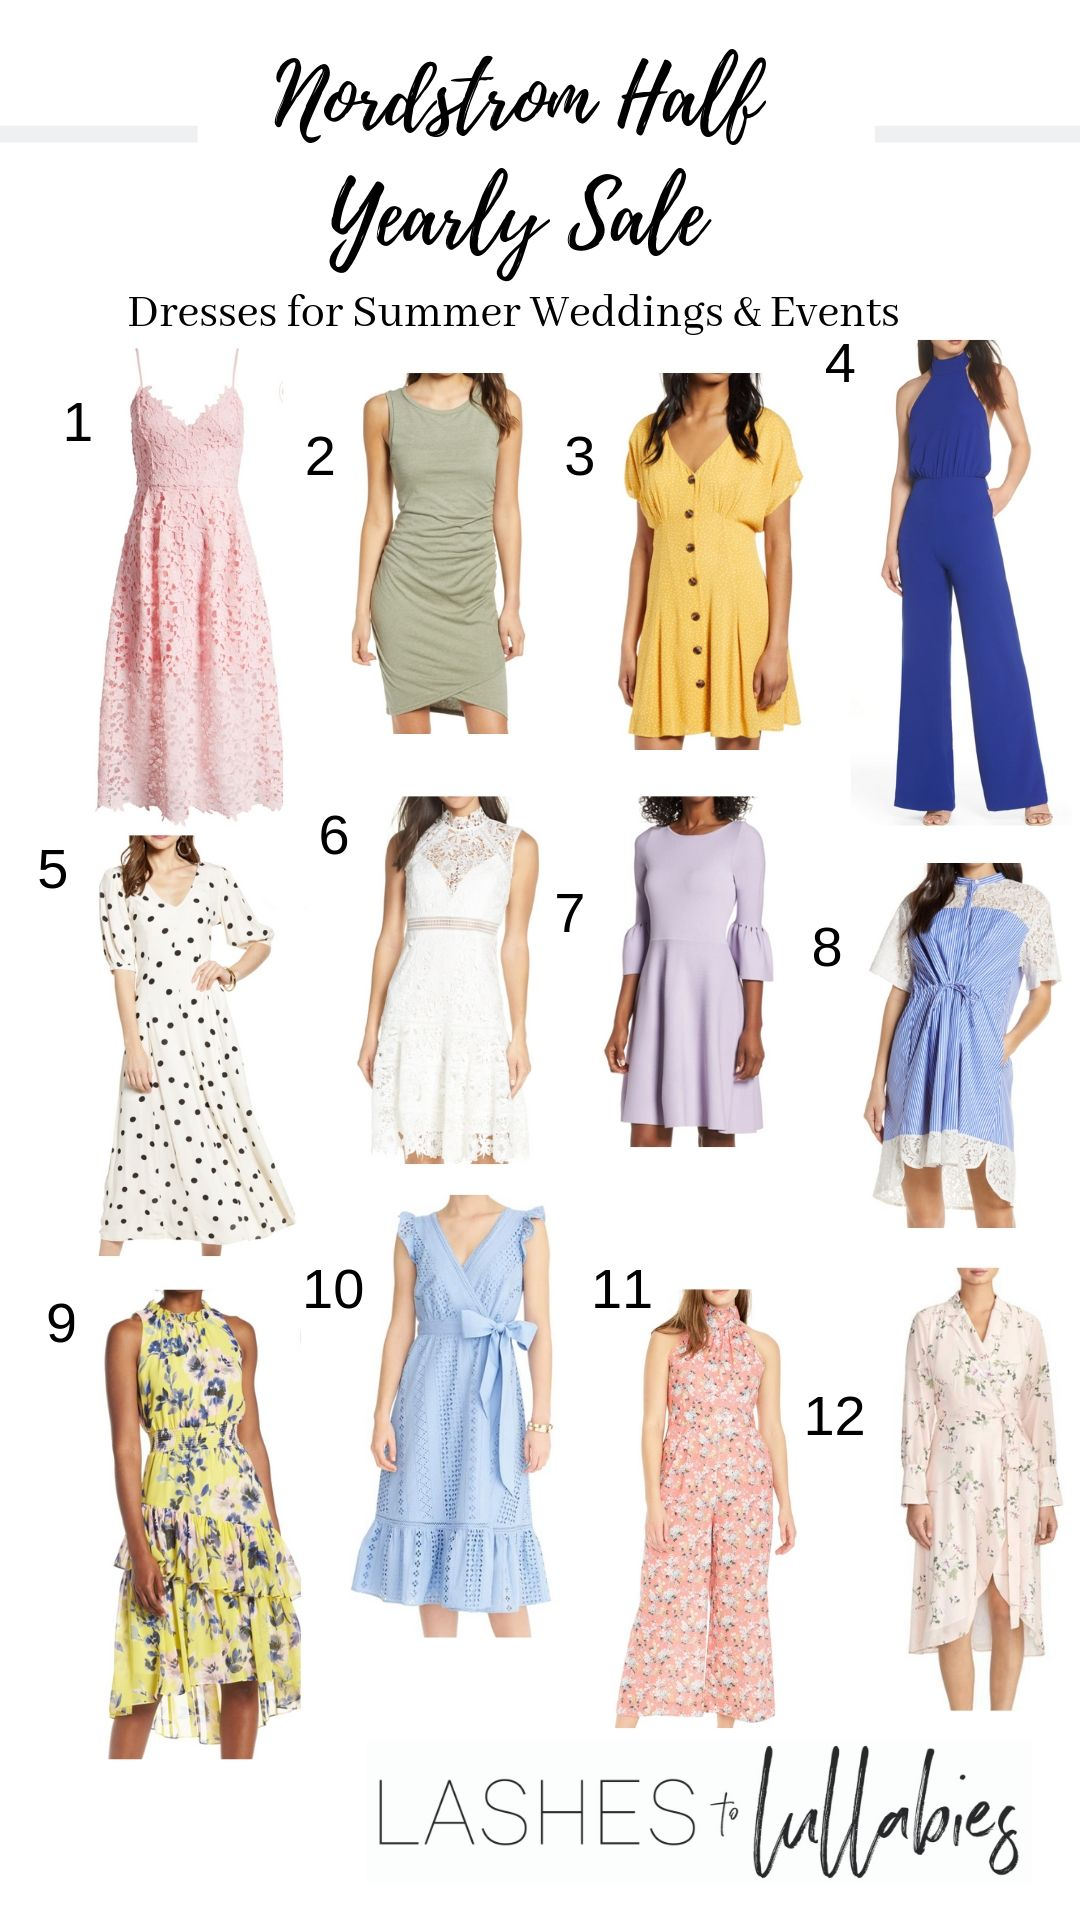 97b5364e165 My picks from the Nordstrom Half Yearly Sale – Summer Dresses ...